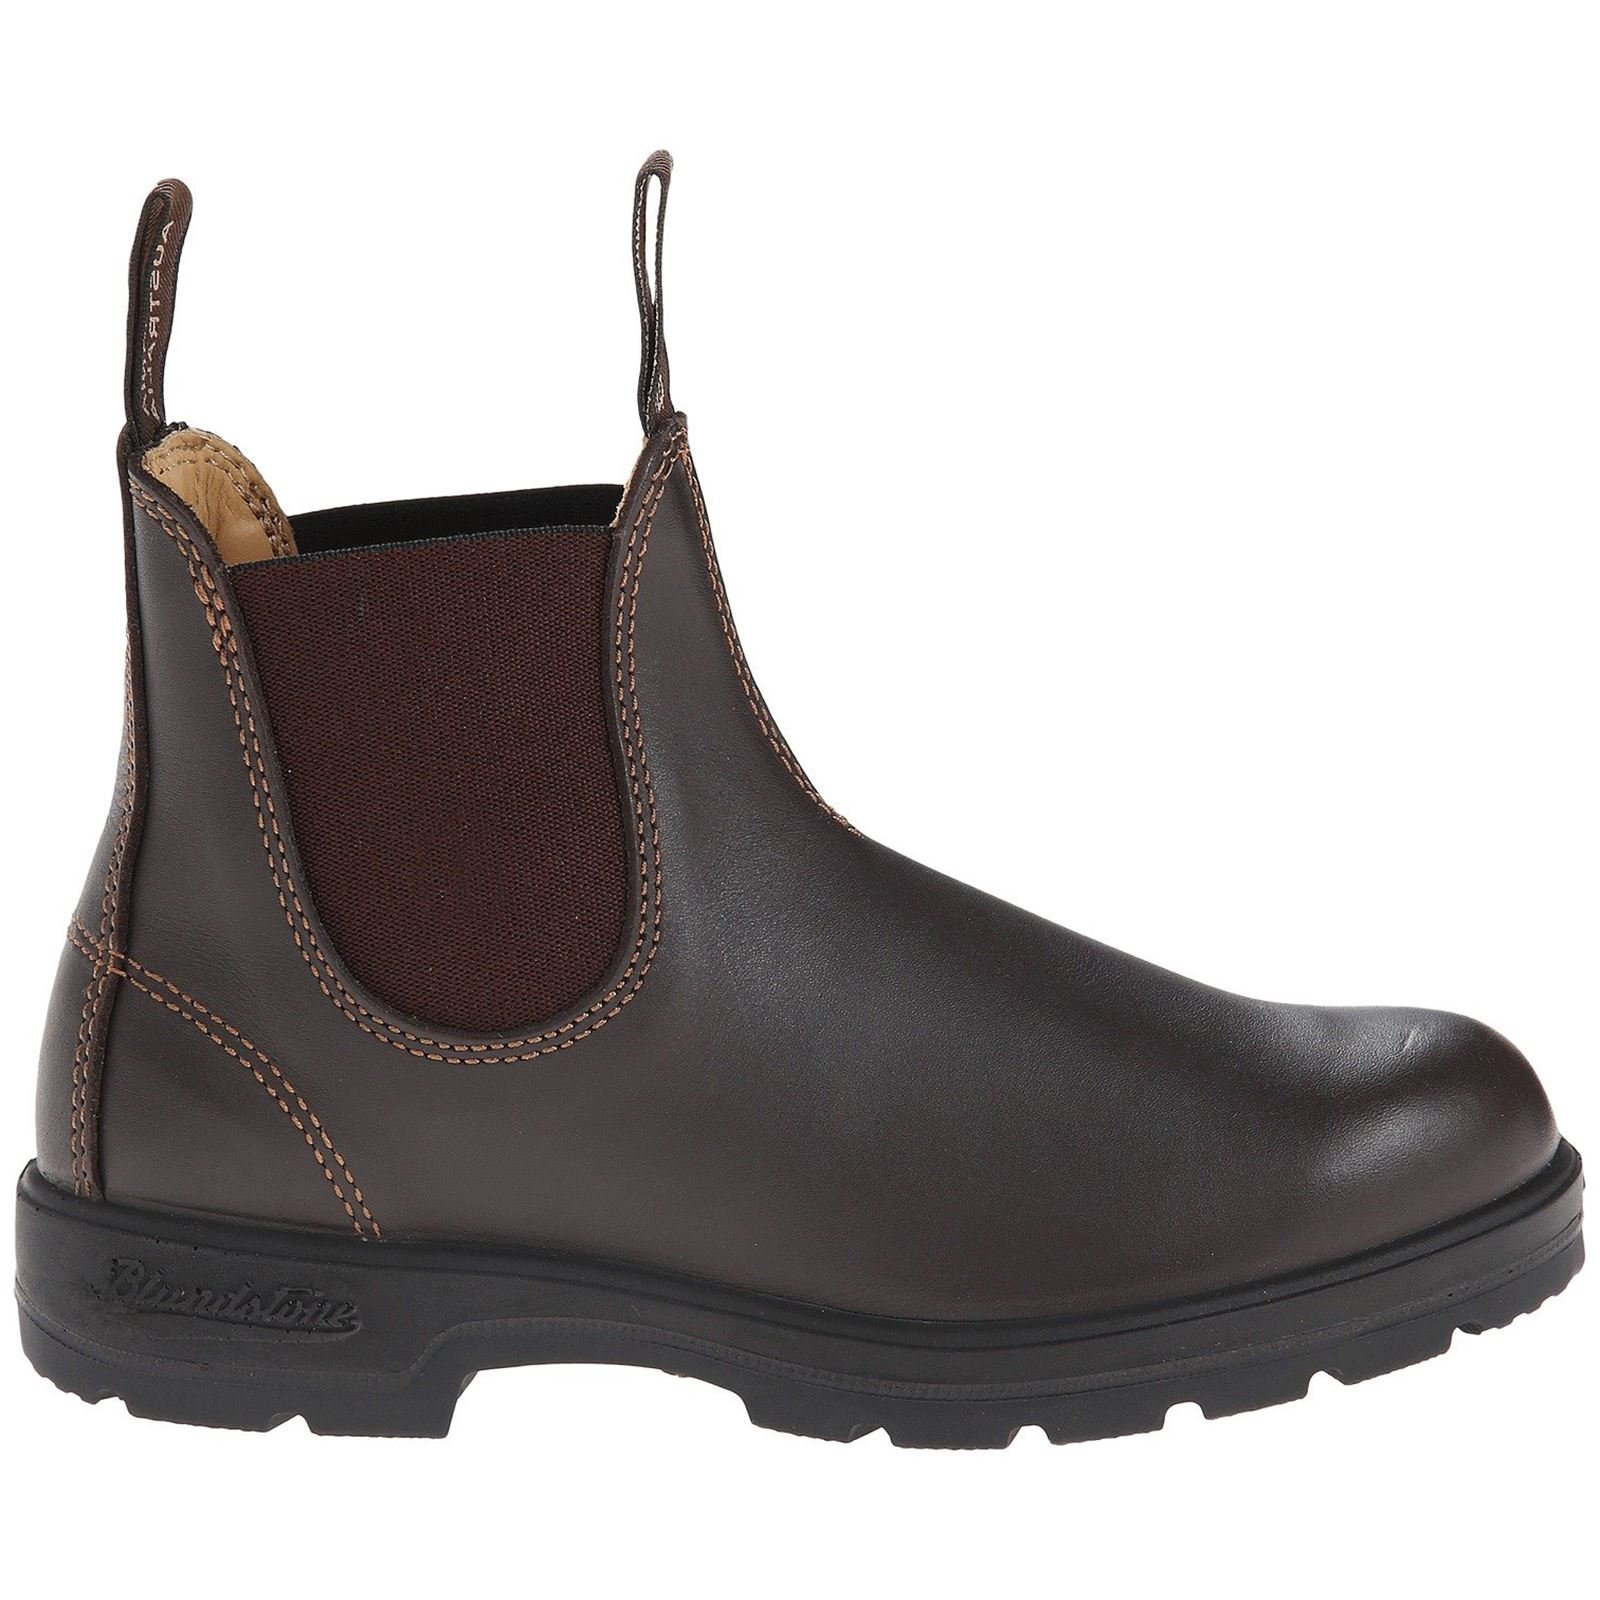 Blundstone Womens 550 Walnut Brown Leather Boots 9 US